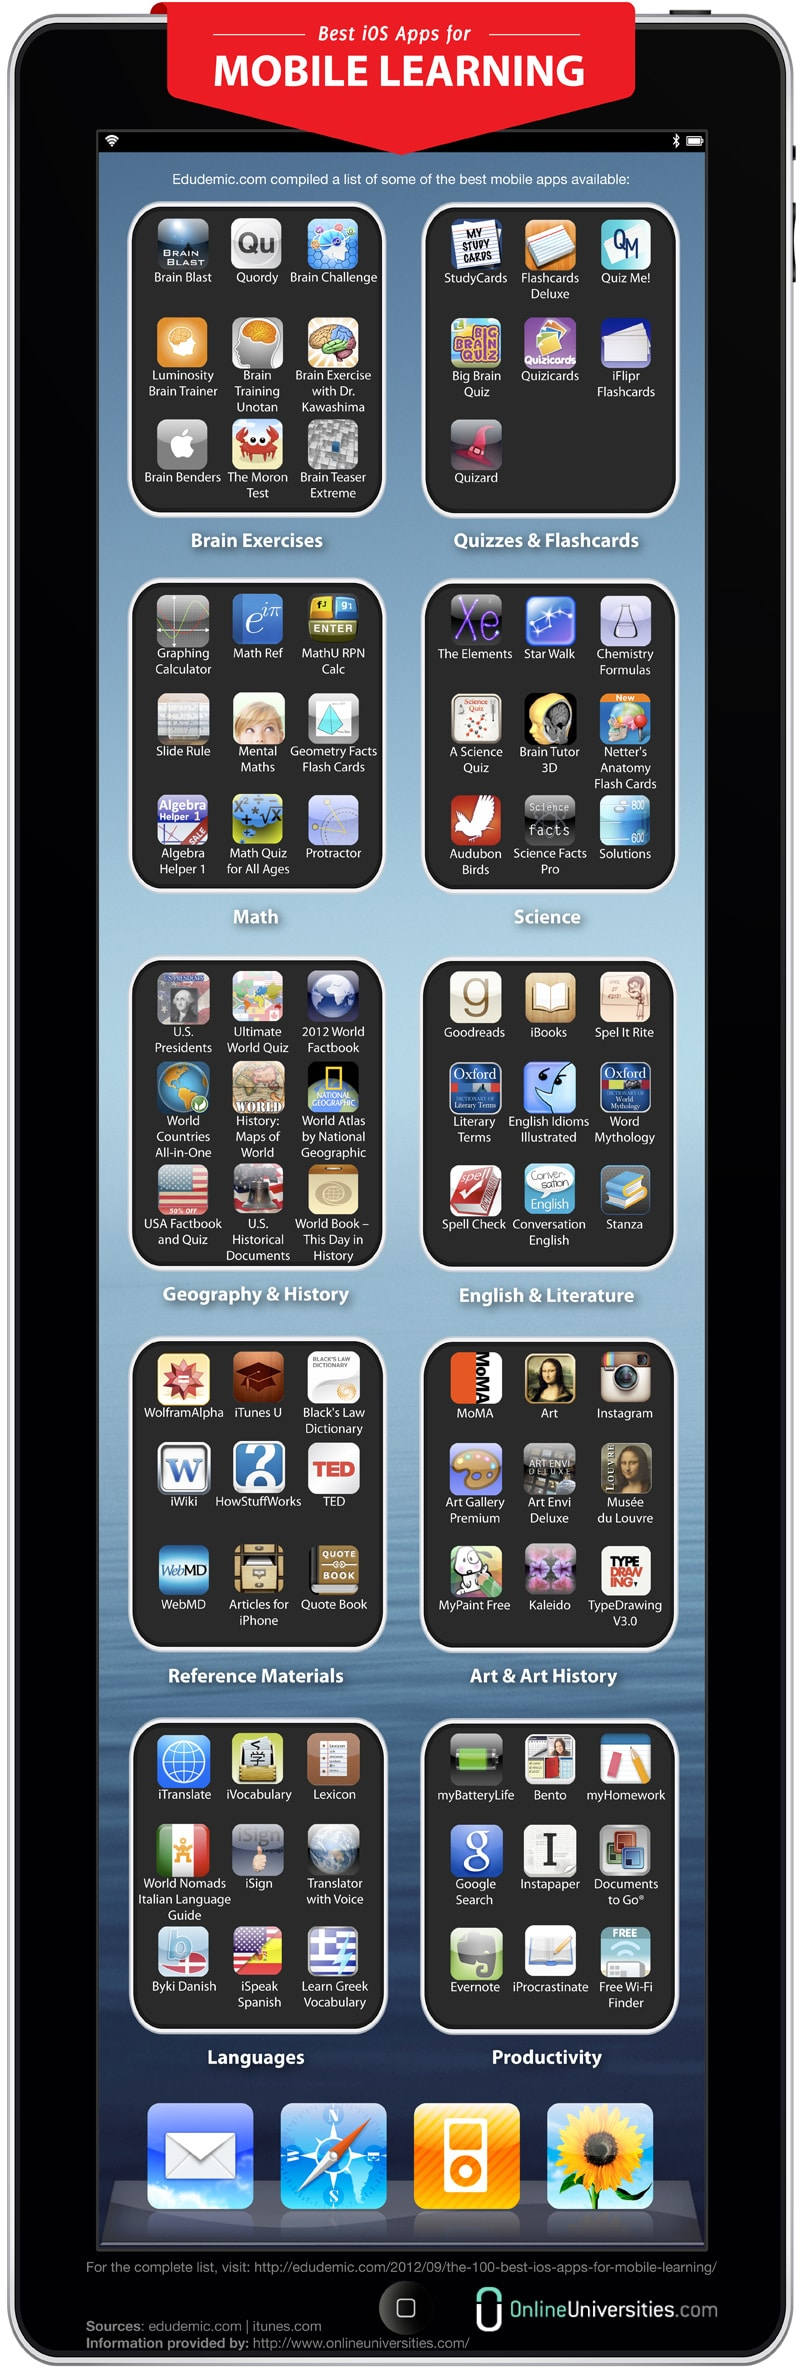 88 Best iOS Apps For Mobile Learning [Infographic]